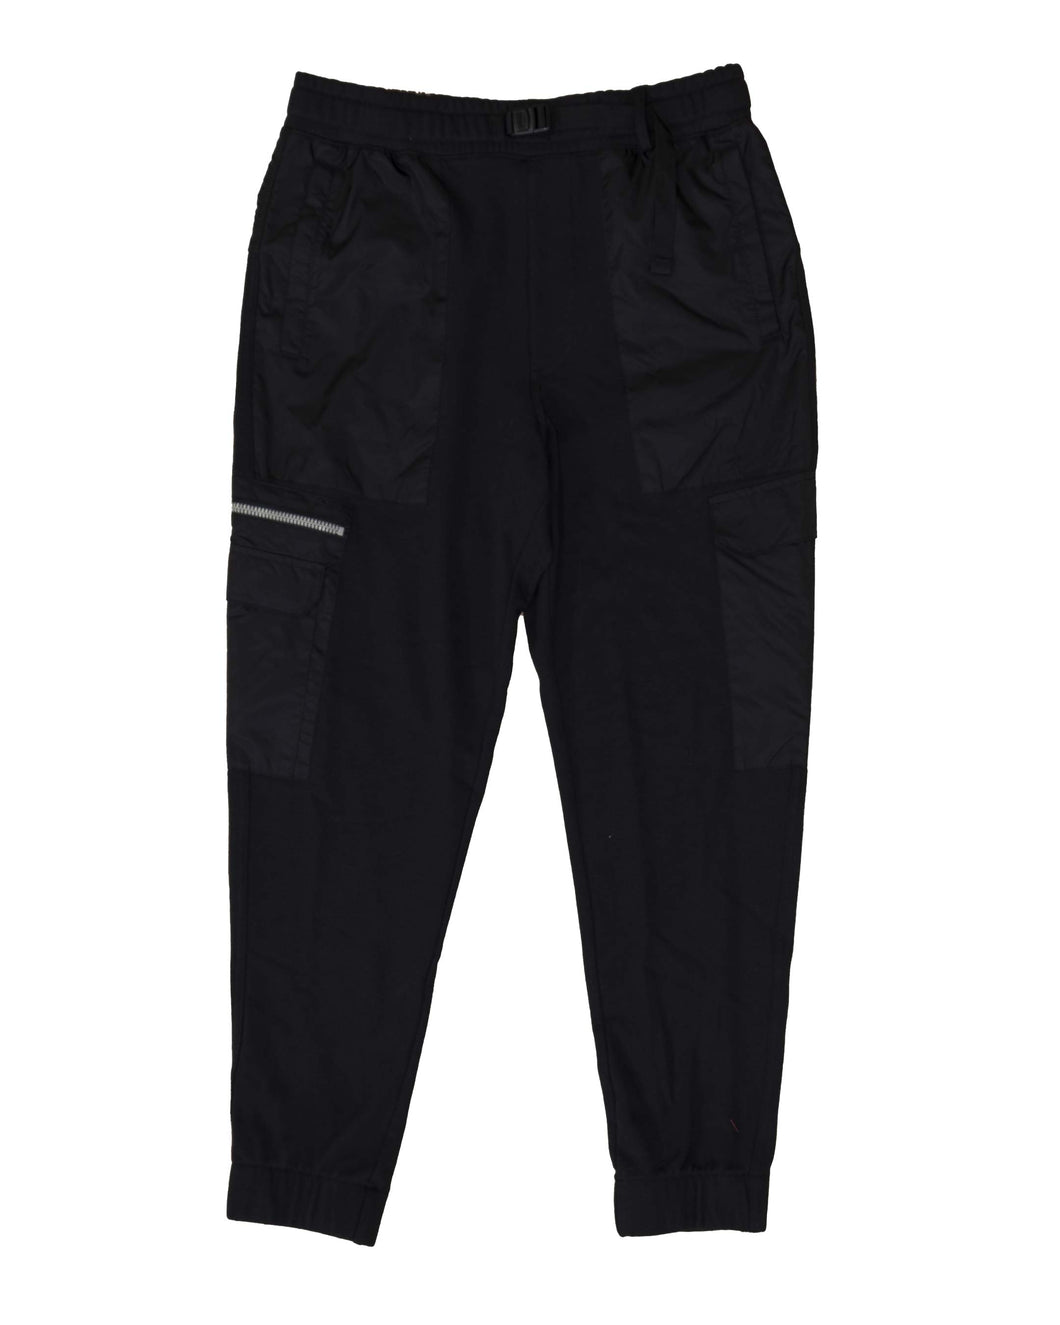 Vans Pantalone 66 SupplyFleece Black